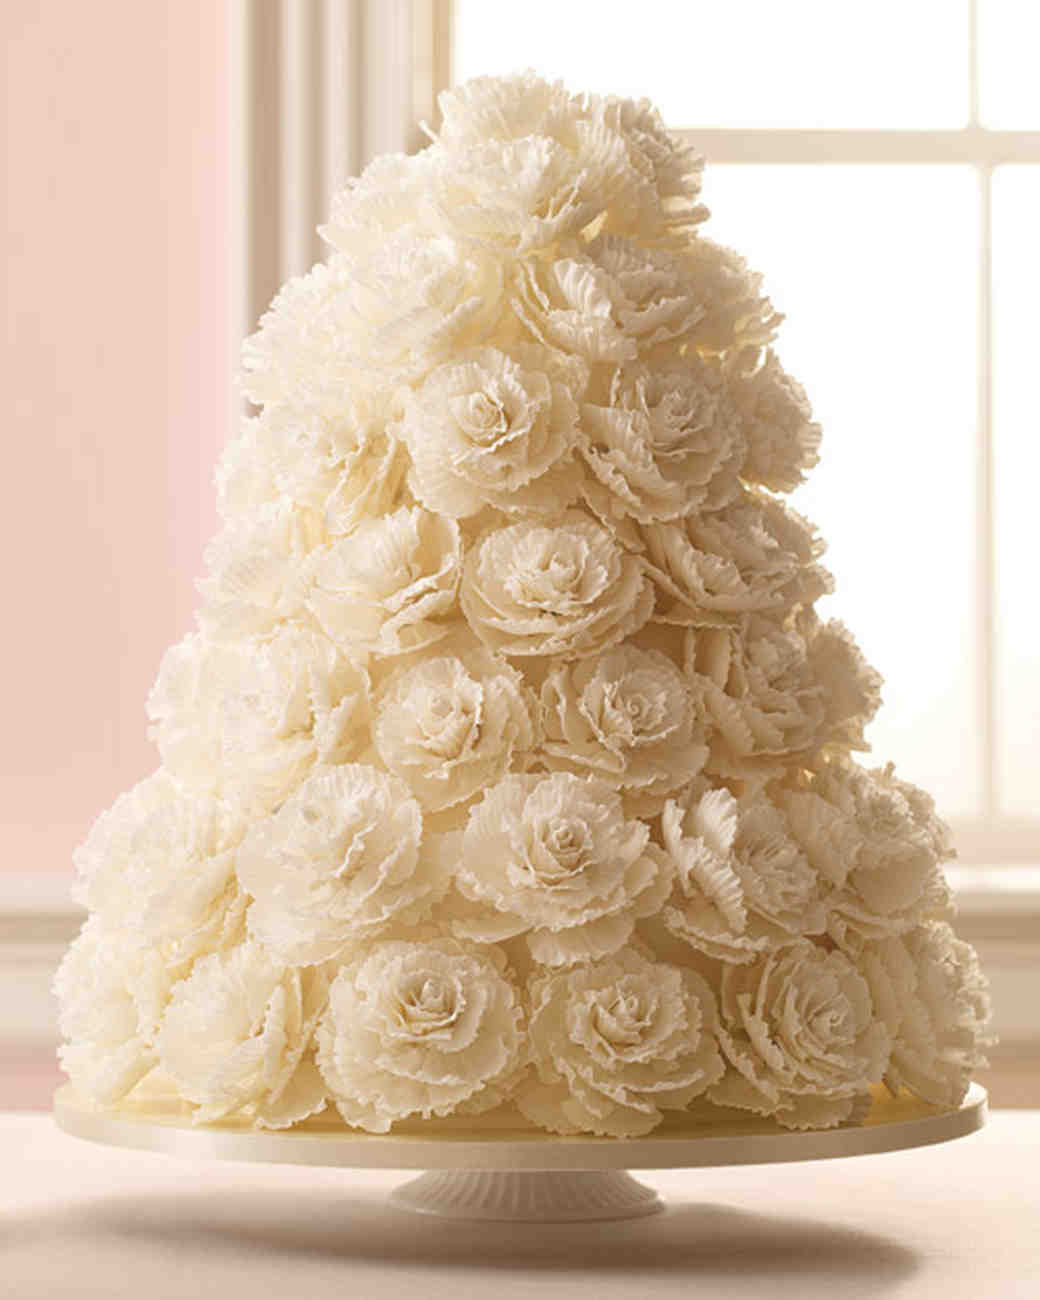 50 Great Wedding Cakes